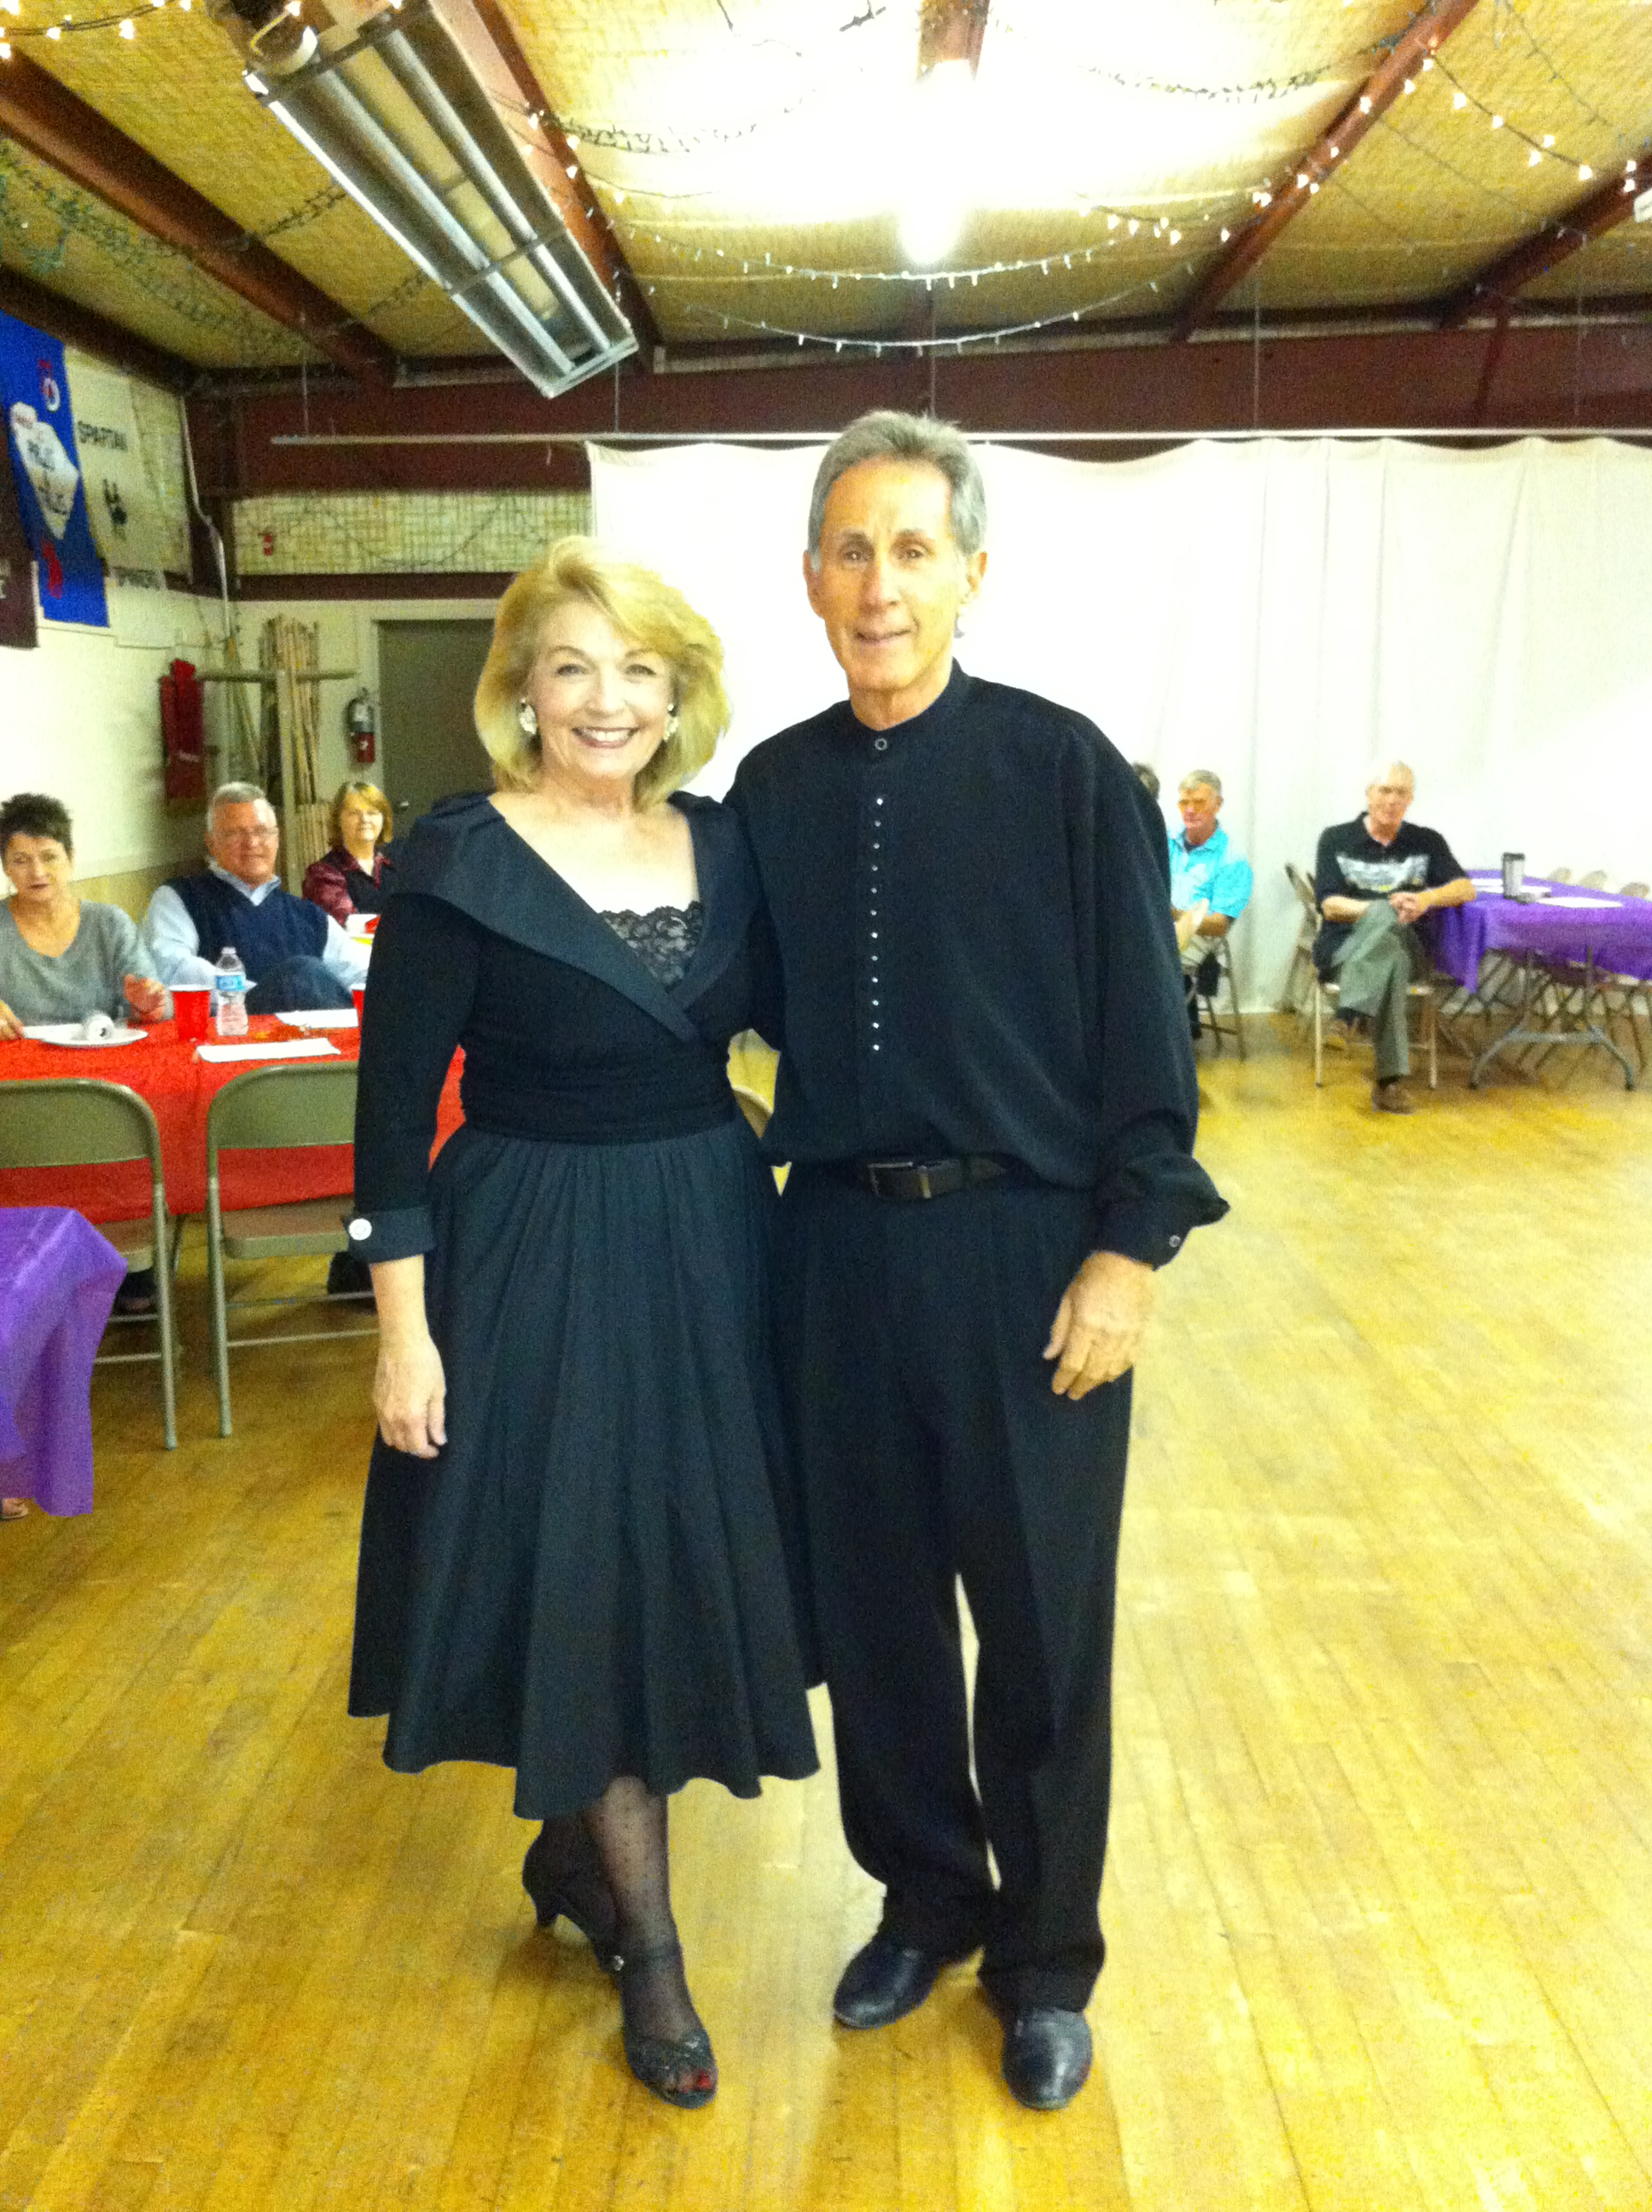 Raoul Weinstein and Valerie Miller after showcase